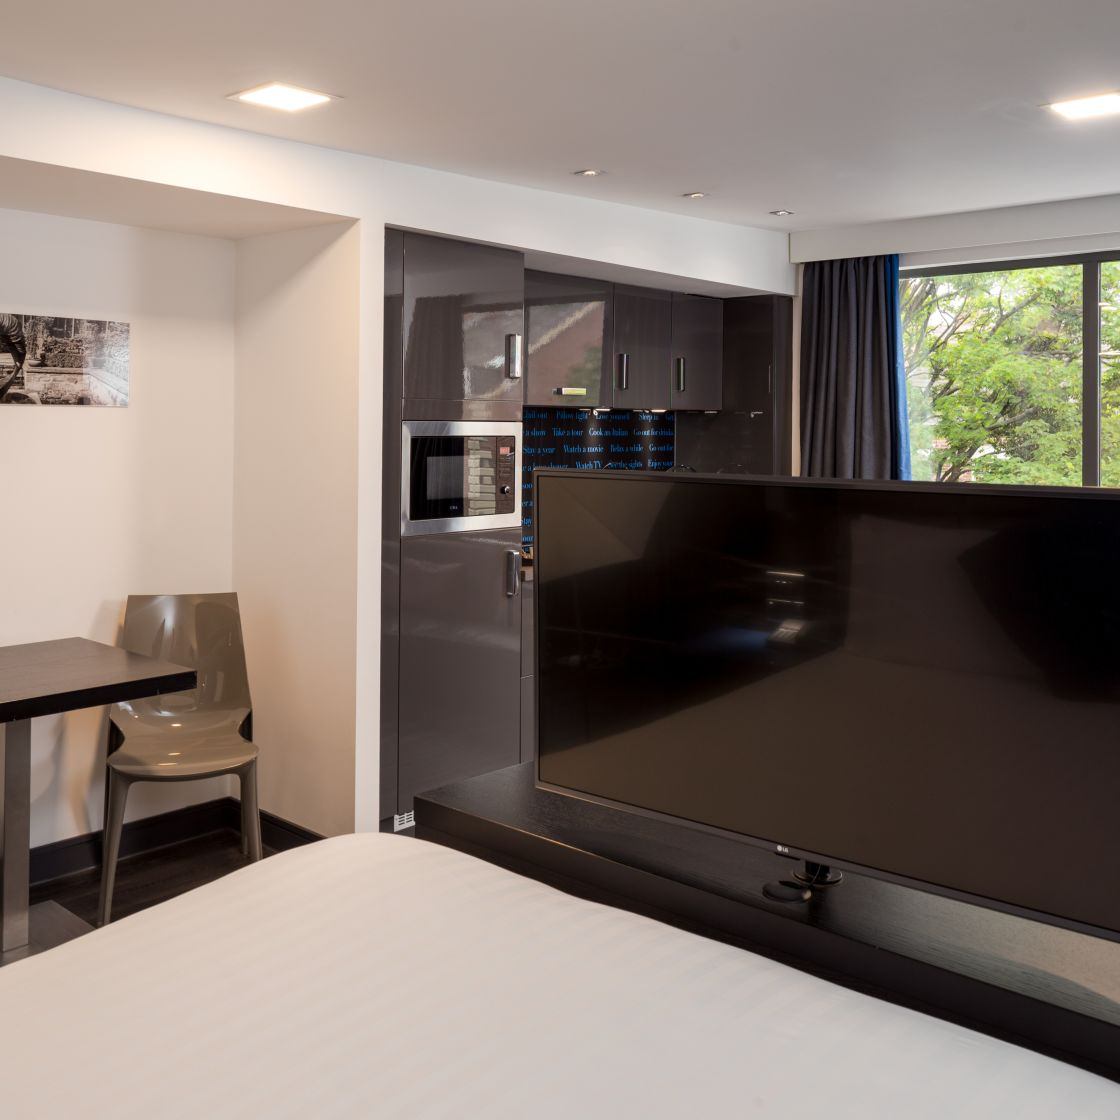 Smart Studio Student Apartment in Chester with fully equipped kitchen. IconInc @ Roomzzz